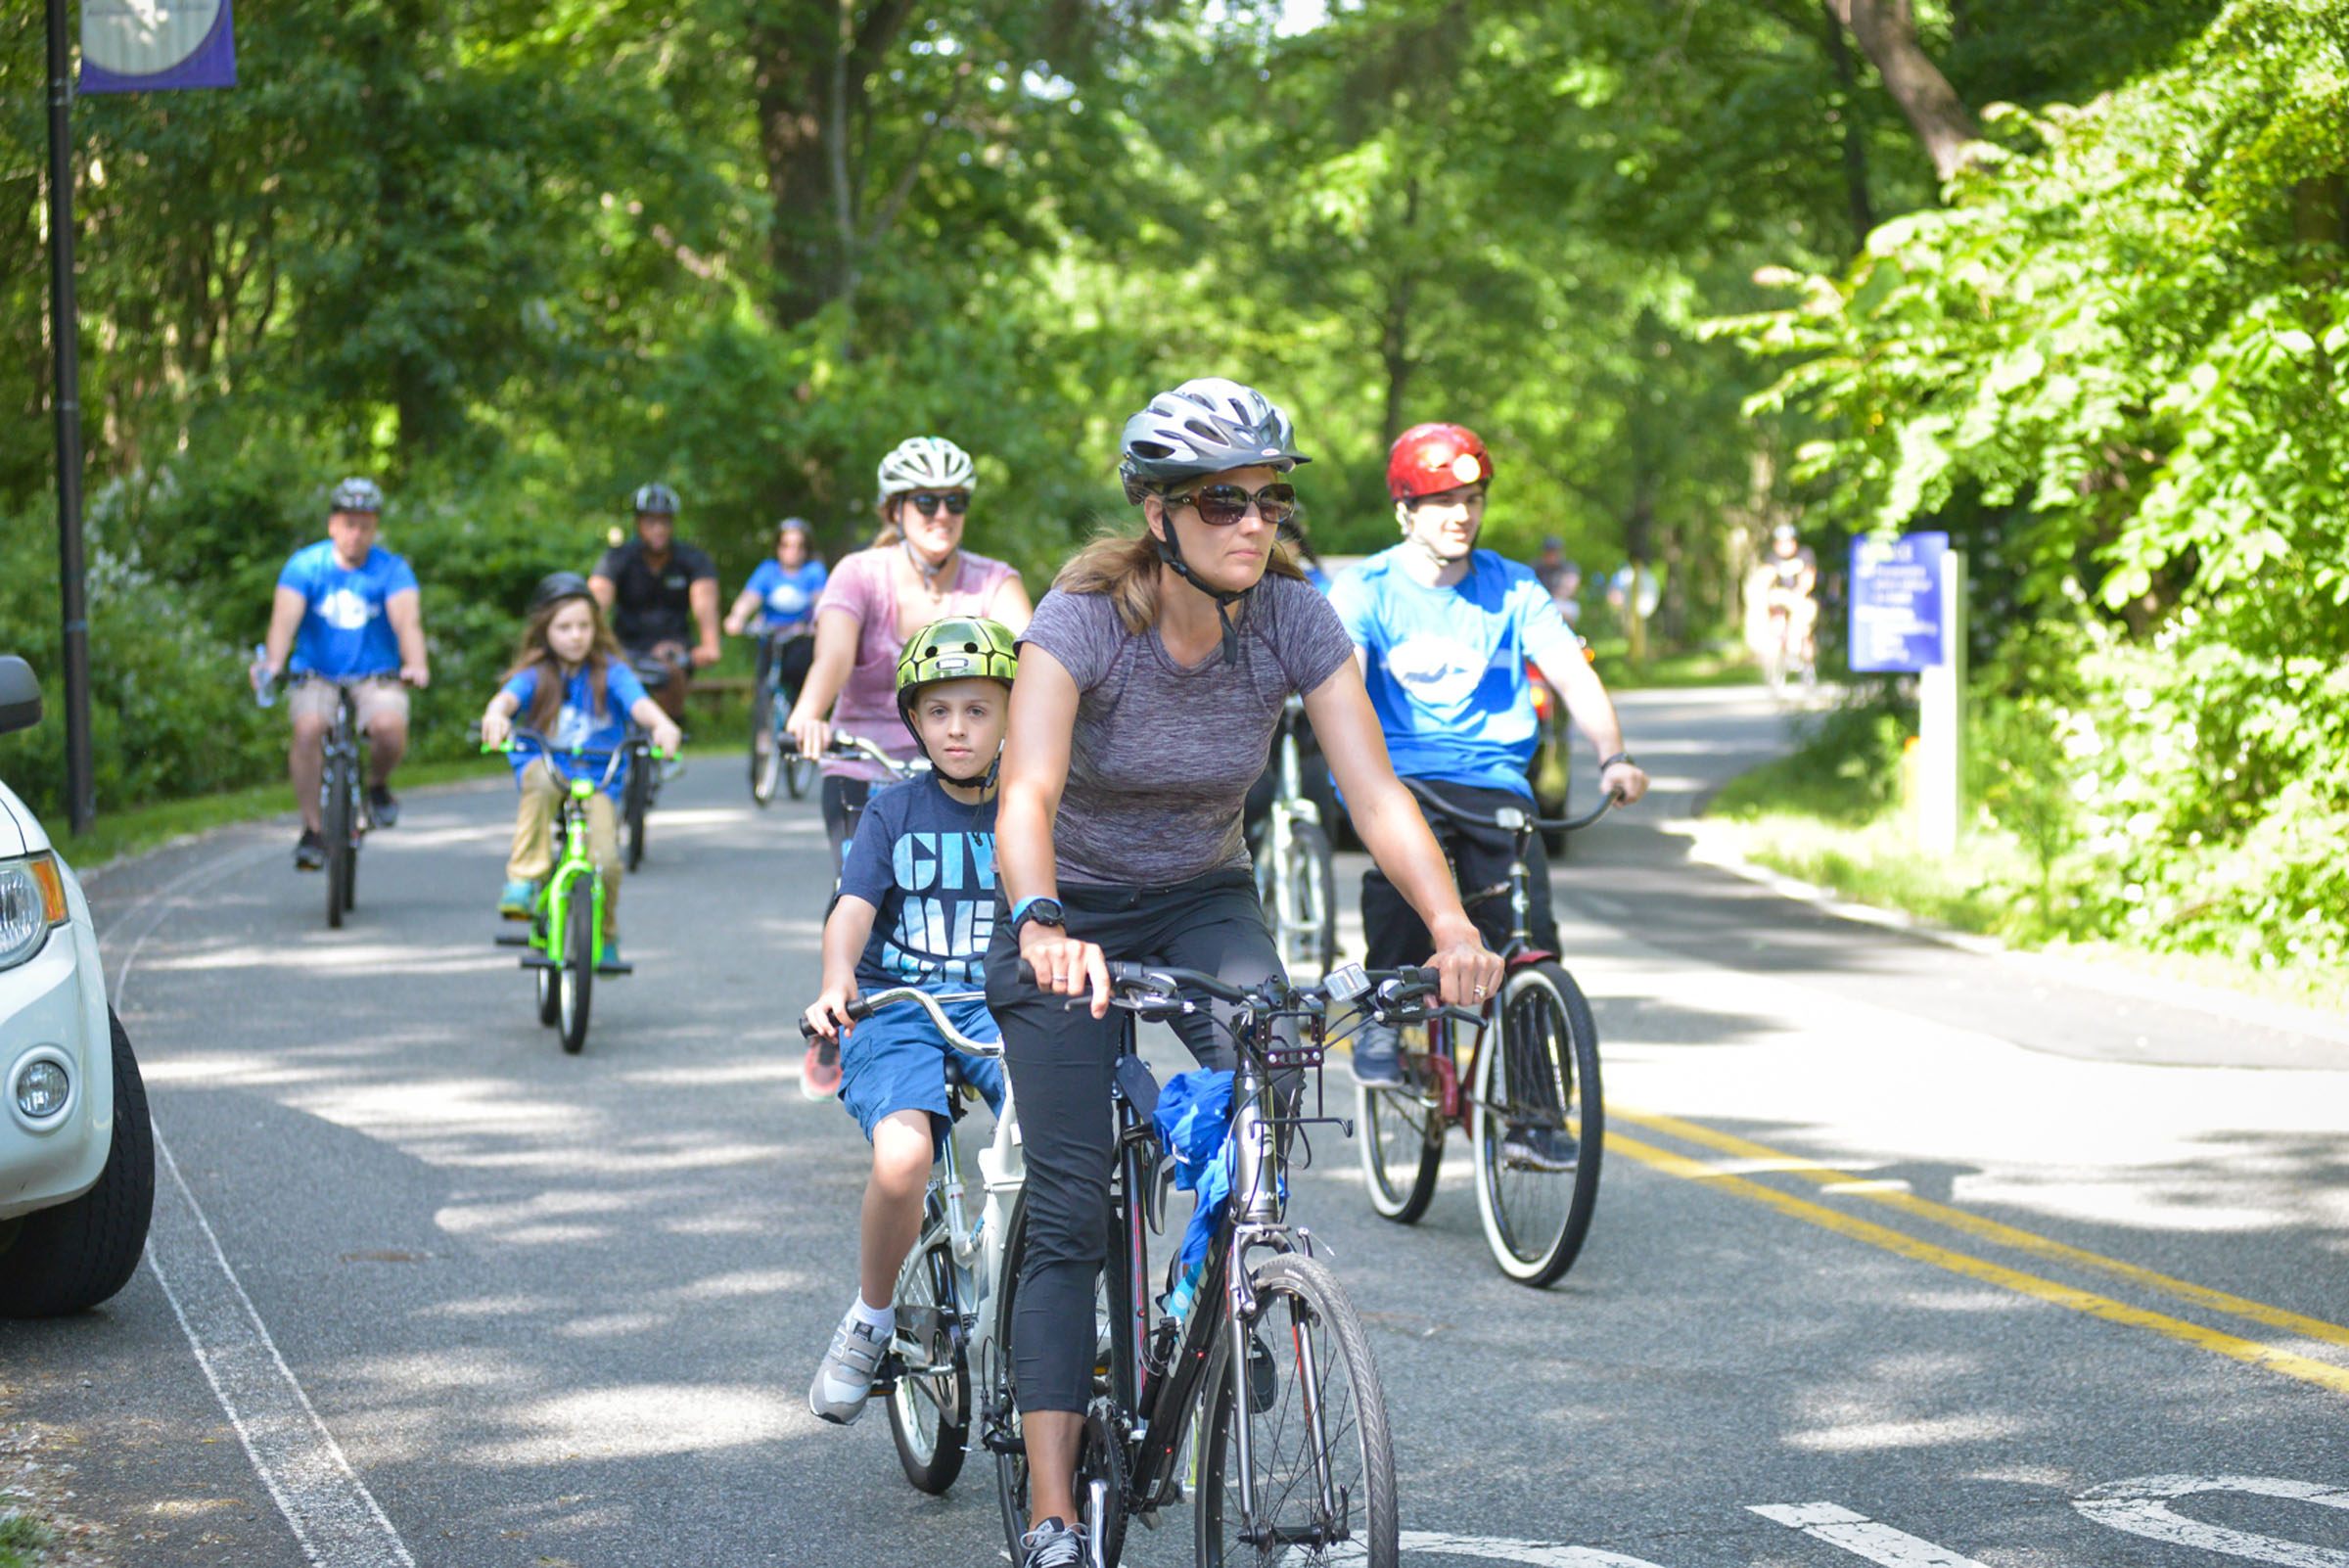 2017-06-04 GTD4A Charity Bike Ride - BCC - Paramus NJ-2018.jpg